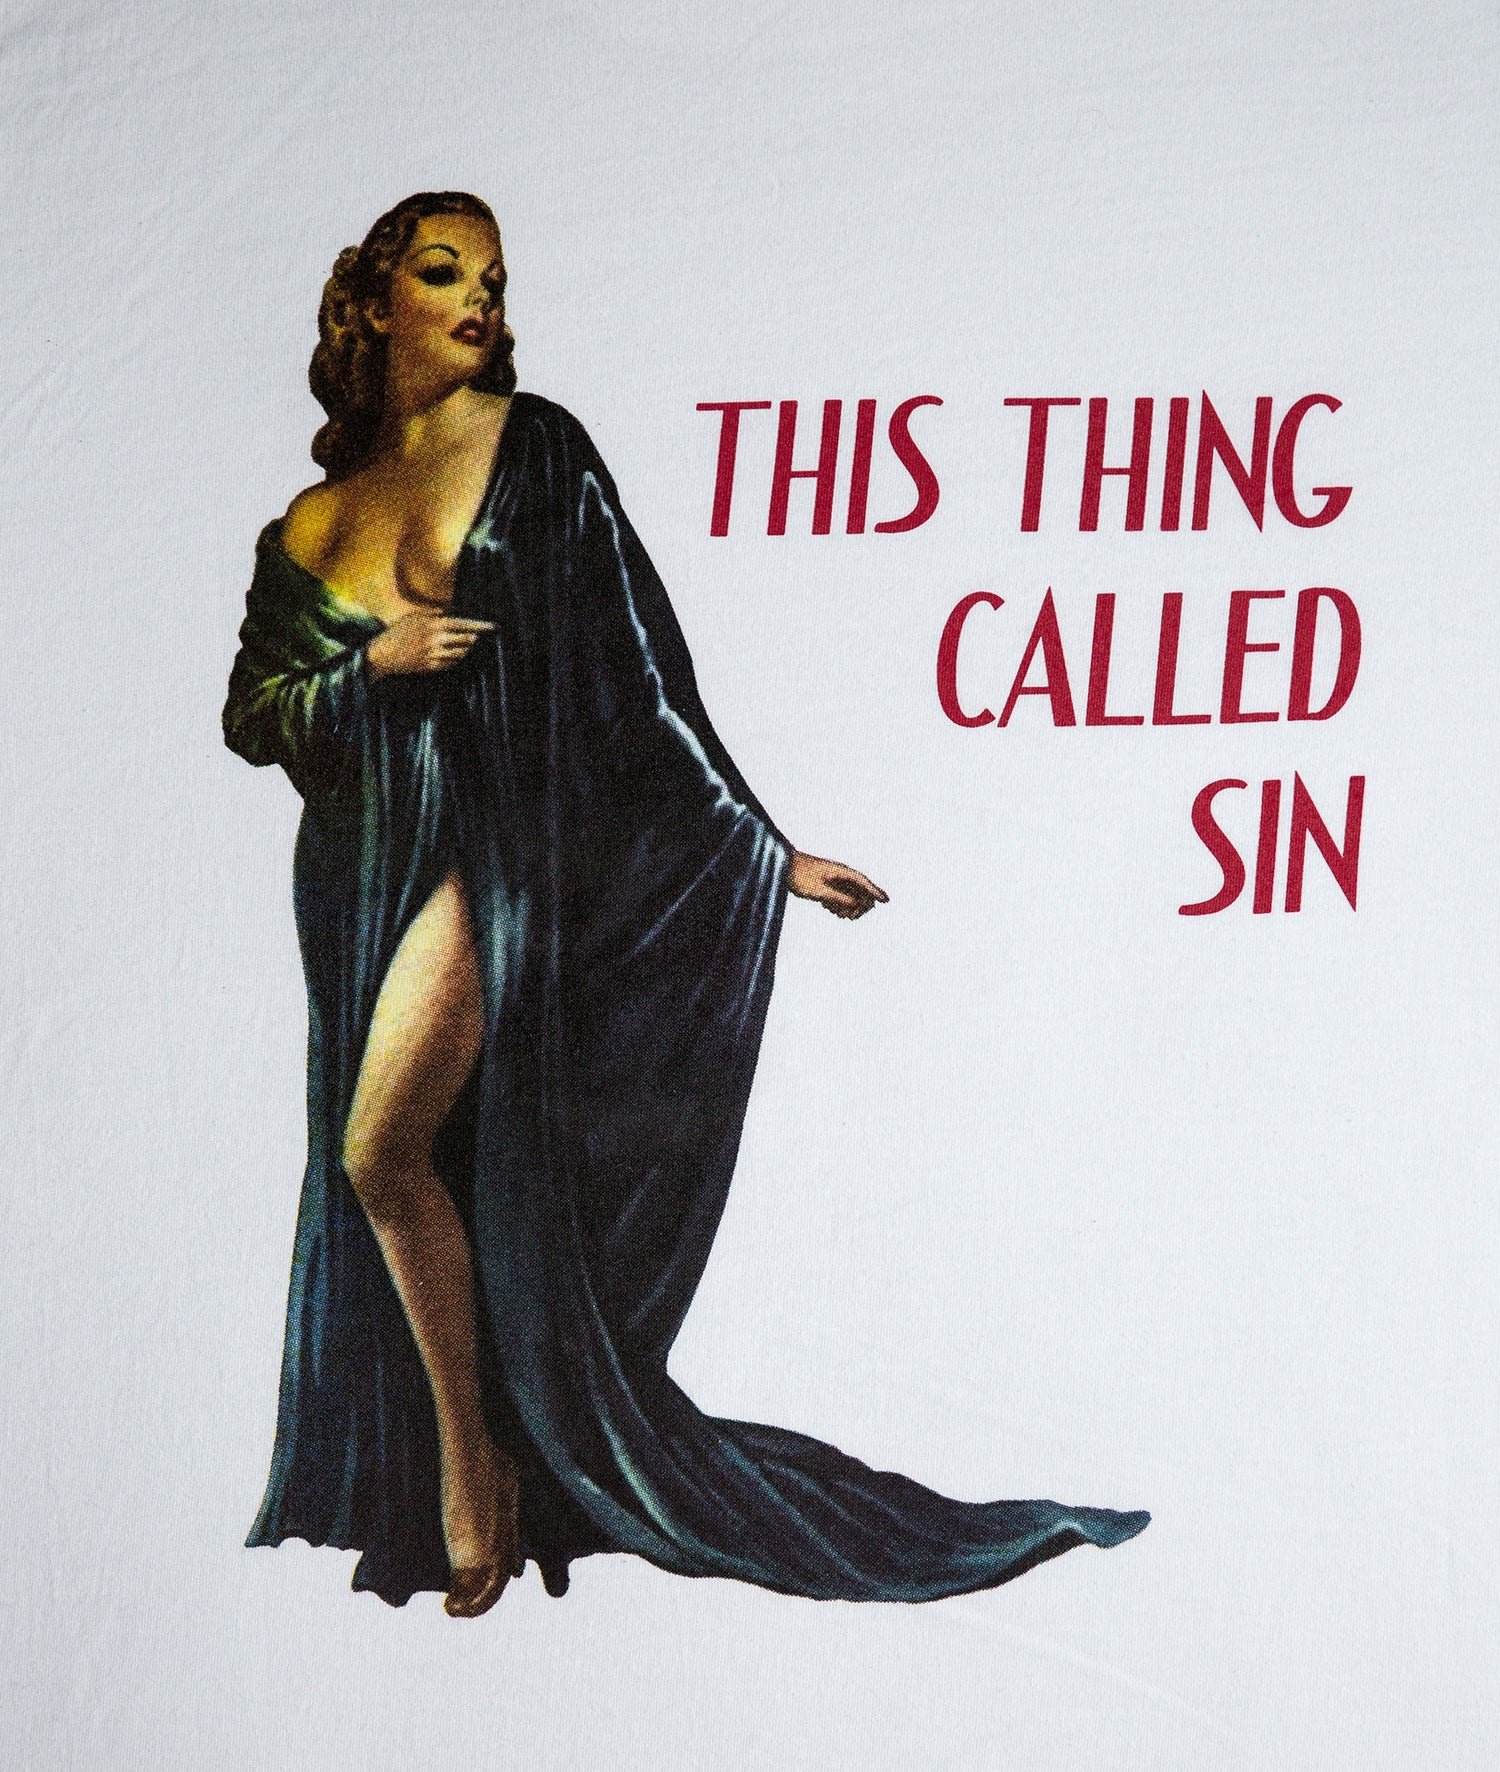 THIS THING CALLED SIN